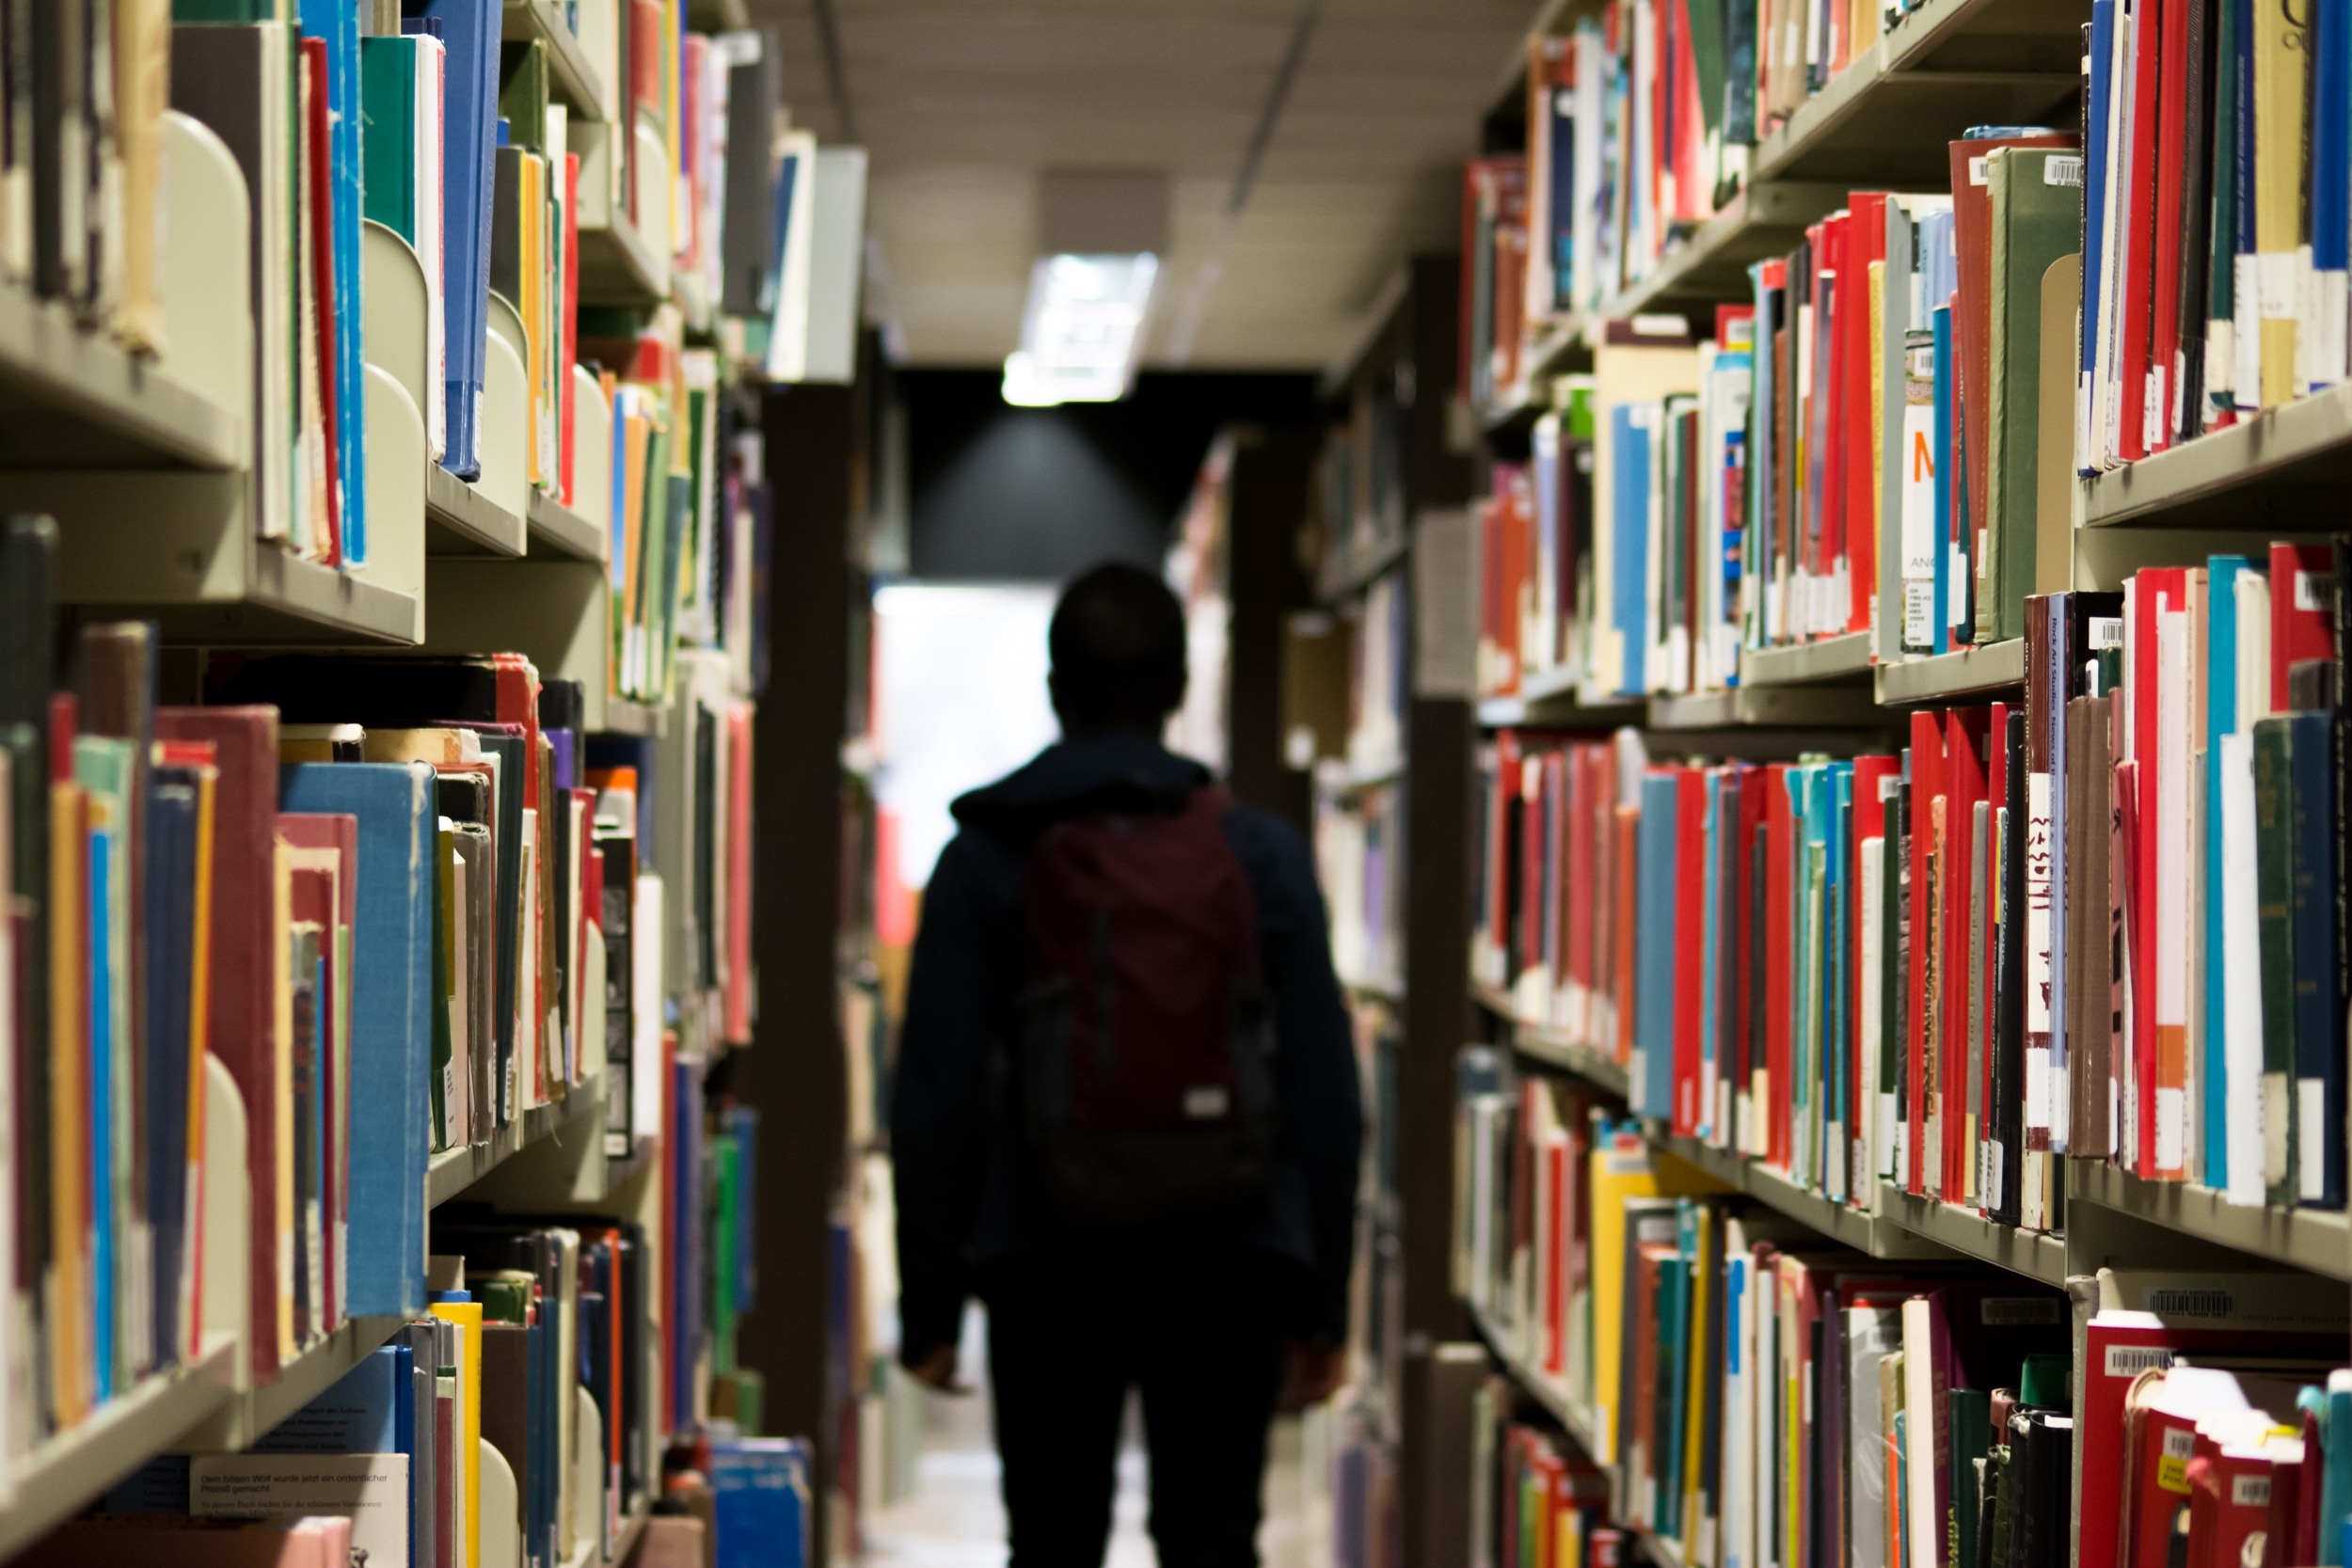 A student walking through the shelves of a library.